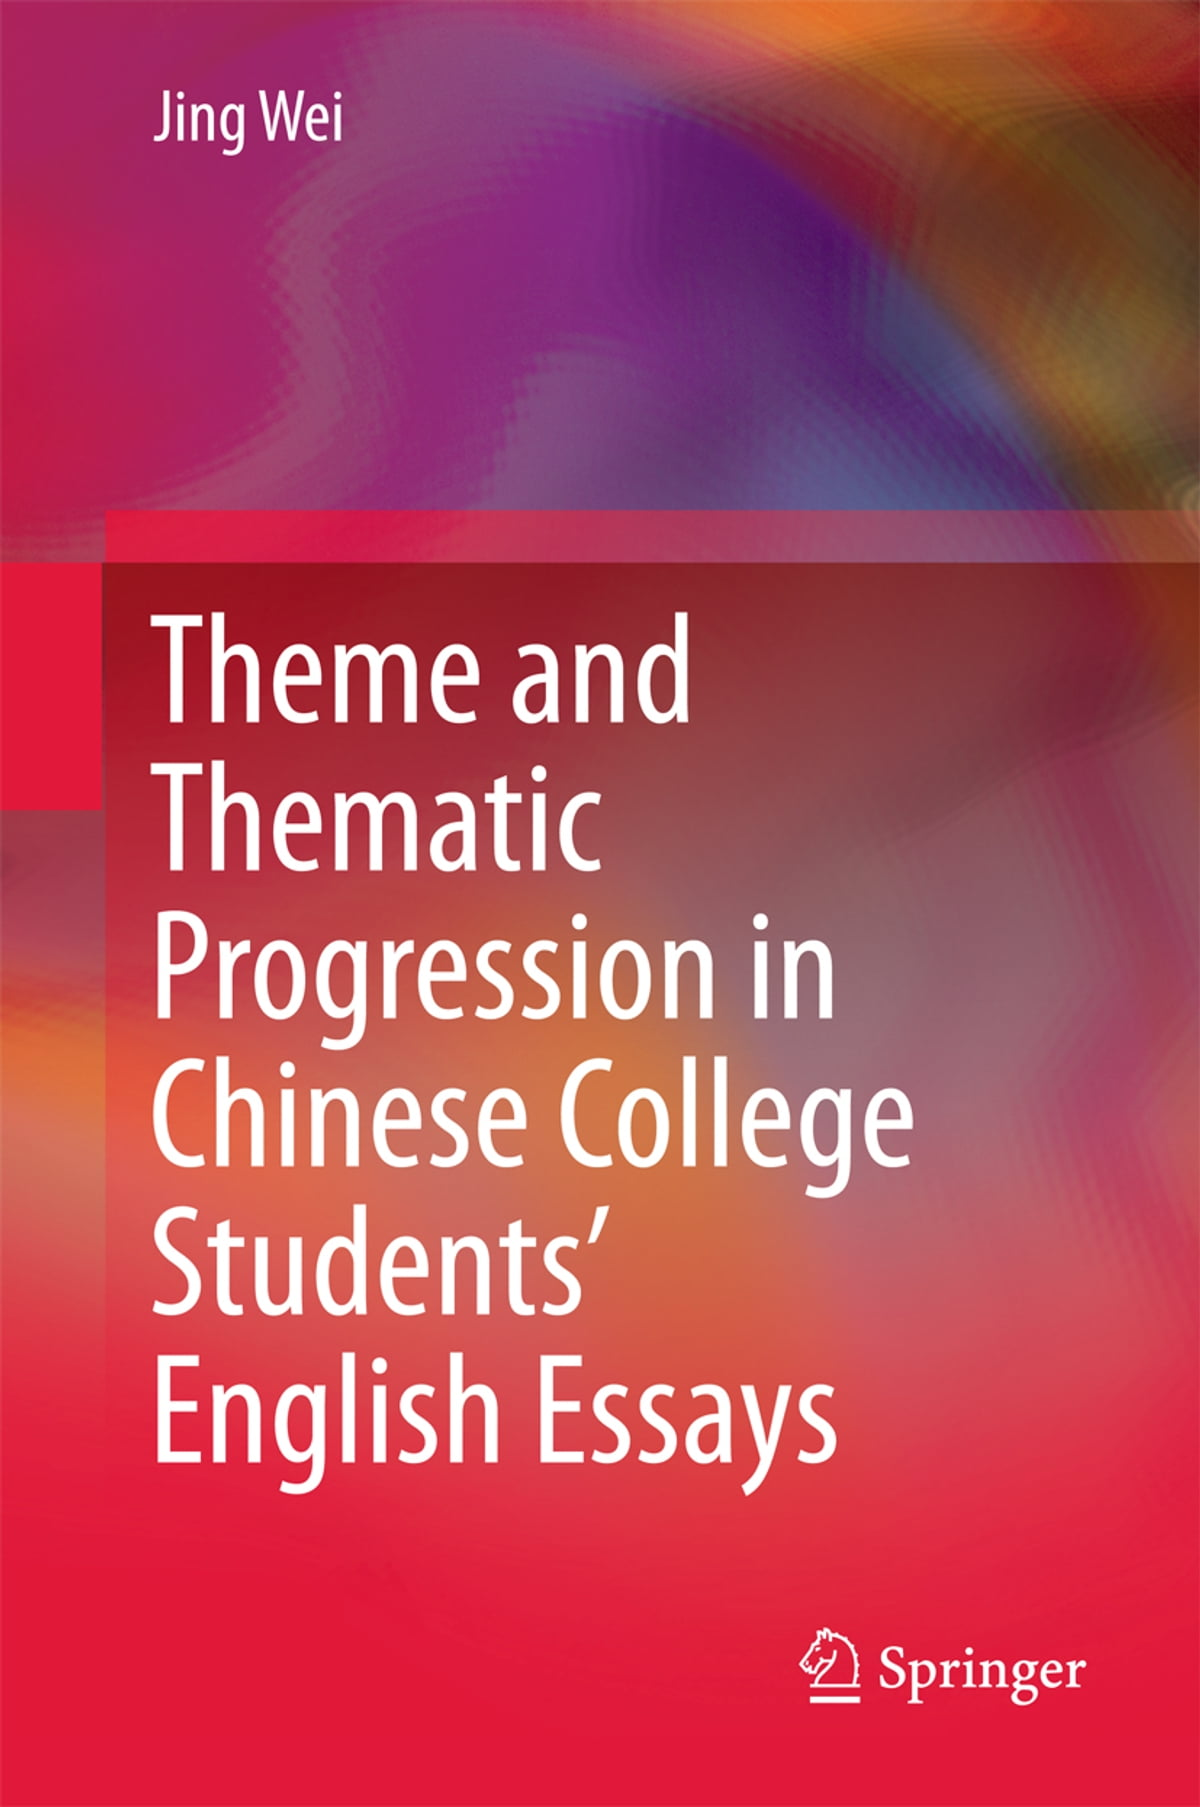 theme and thematic progression in chinese college students theme and thematic progression in chinese college students english essays ebook by jing wei 9789811002540 rakuten kobo